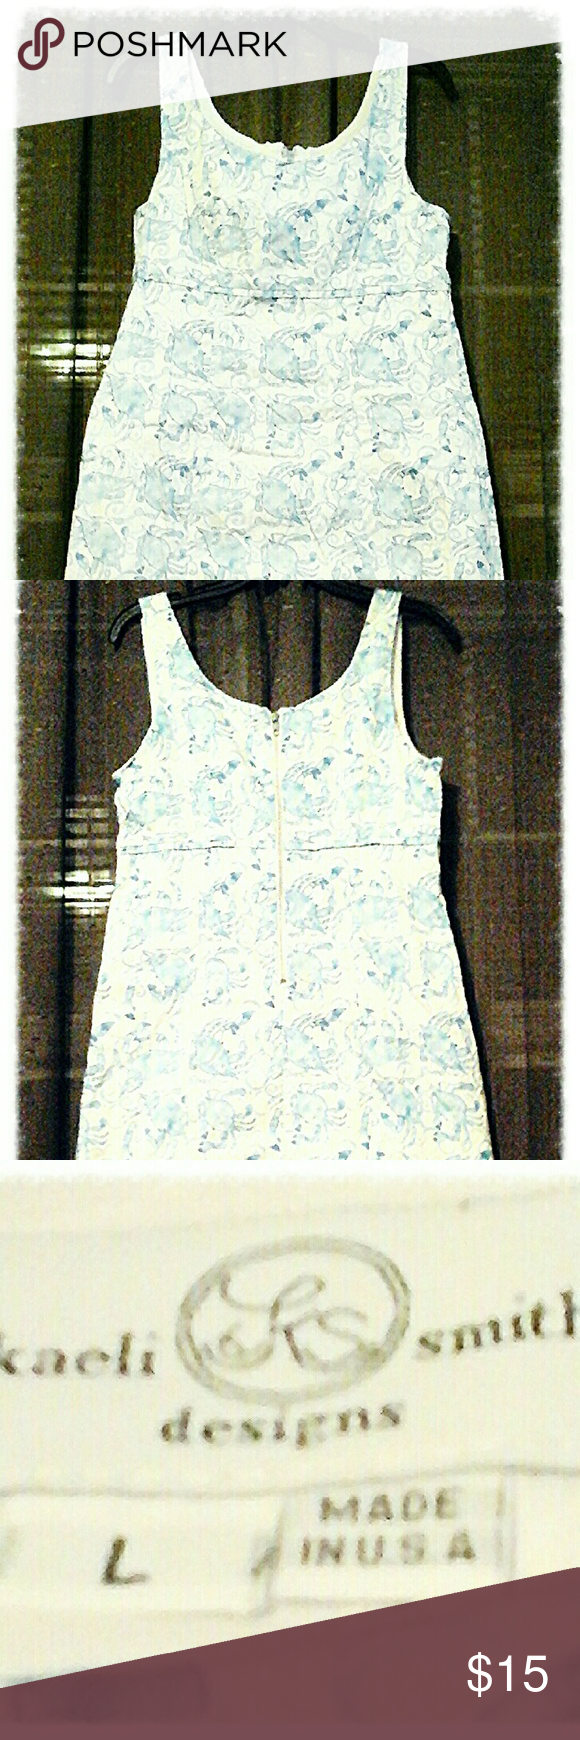 Kaeli Smith Sun Dress Kaeli Smith Sun Dress  Women's size Large.  Beachy pattern, white, with a blue pattern (upon closer examination, the pattern is actually little crabs lol) Excellent condition. No stains. Retail price: $169 Kaeli Smith  Dresses